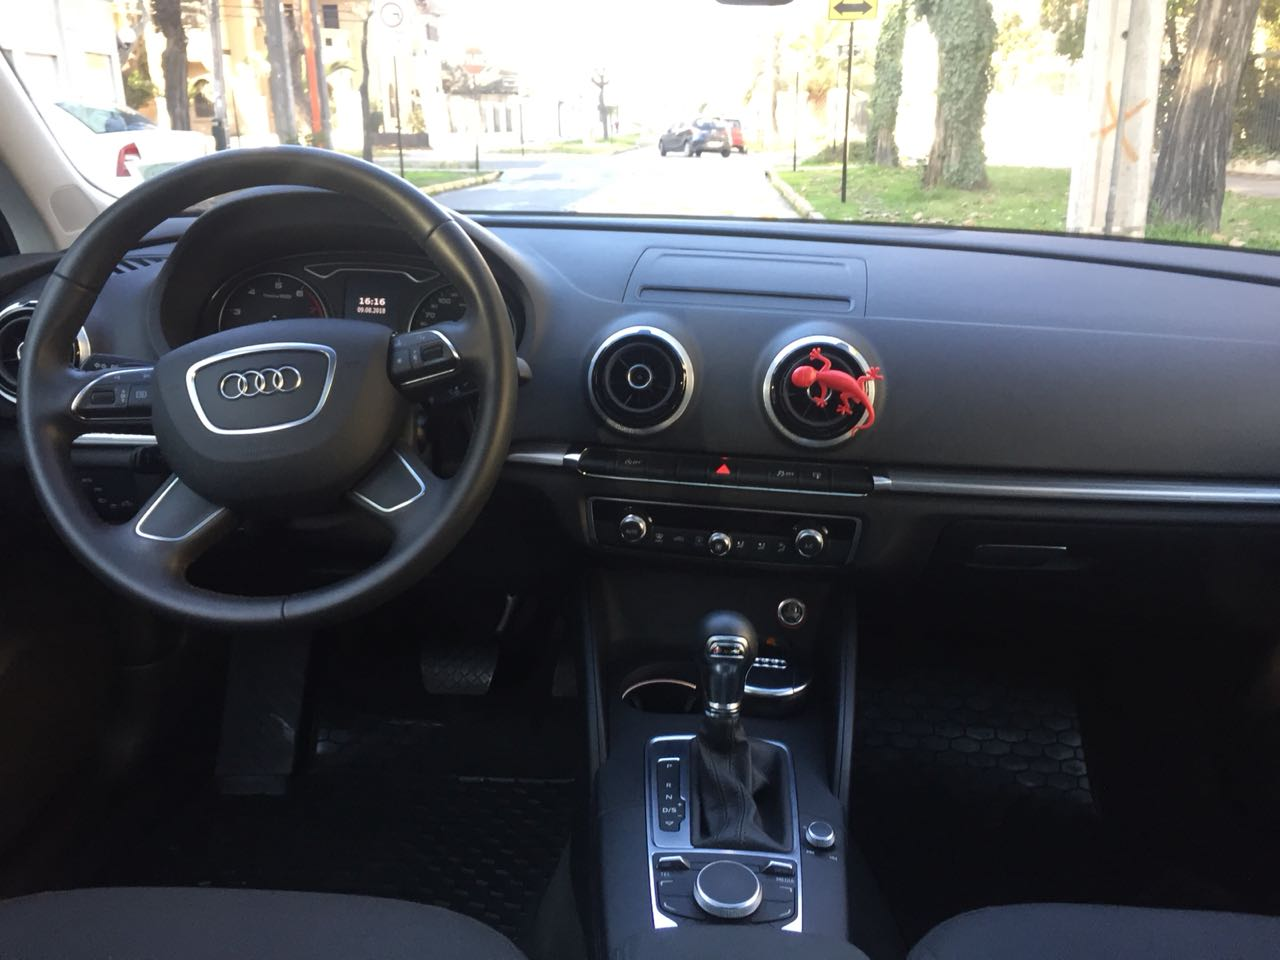 Audi A3 1.8 5P Stronic, AT año 2015